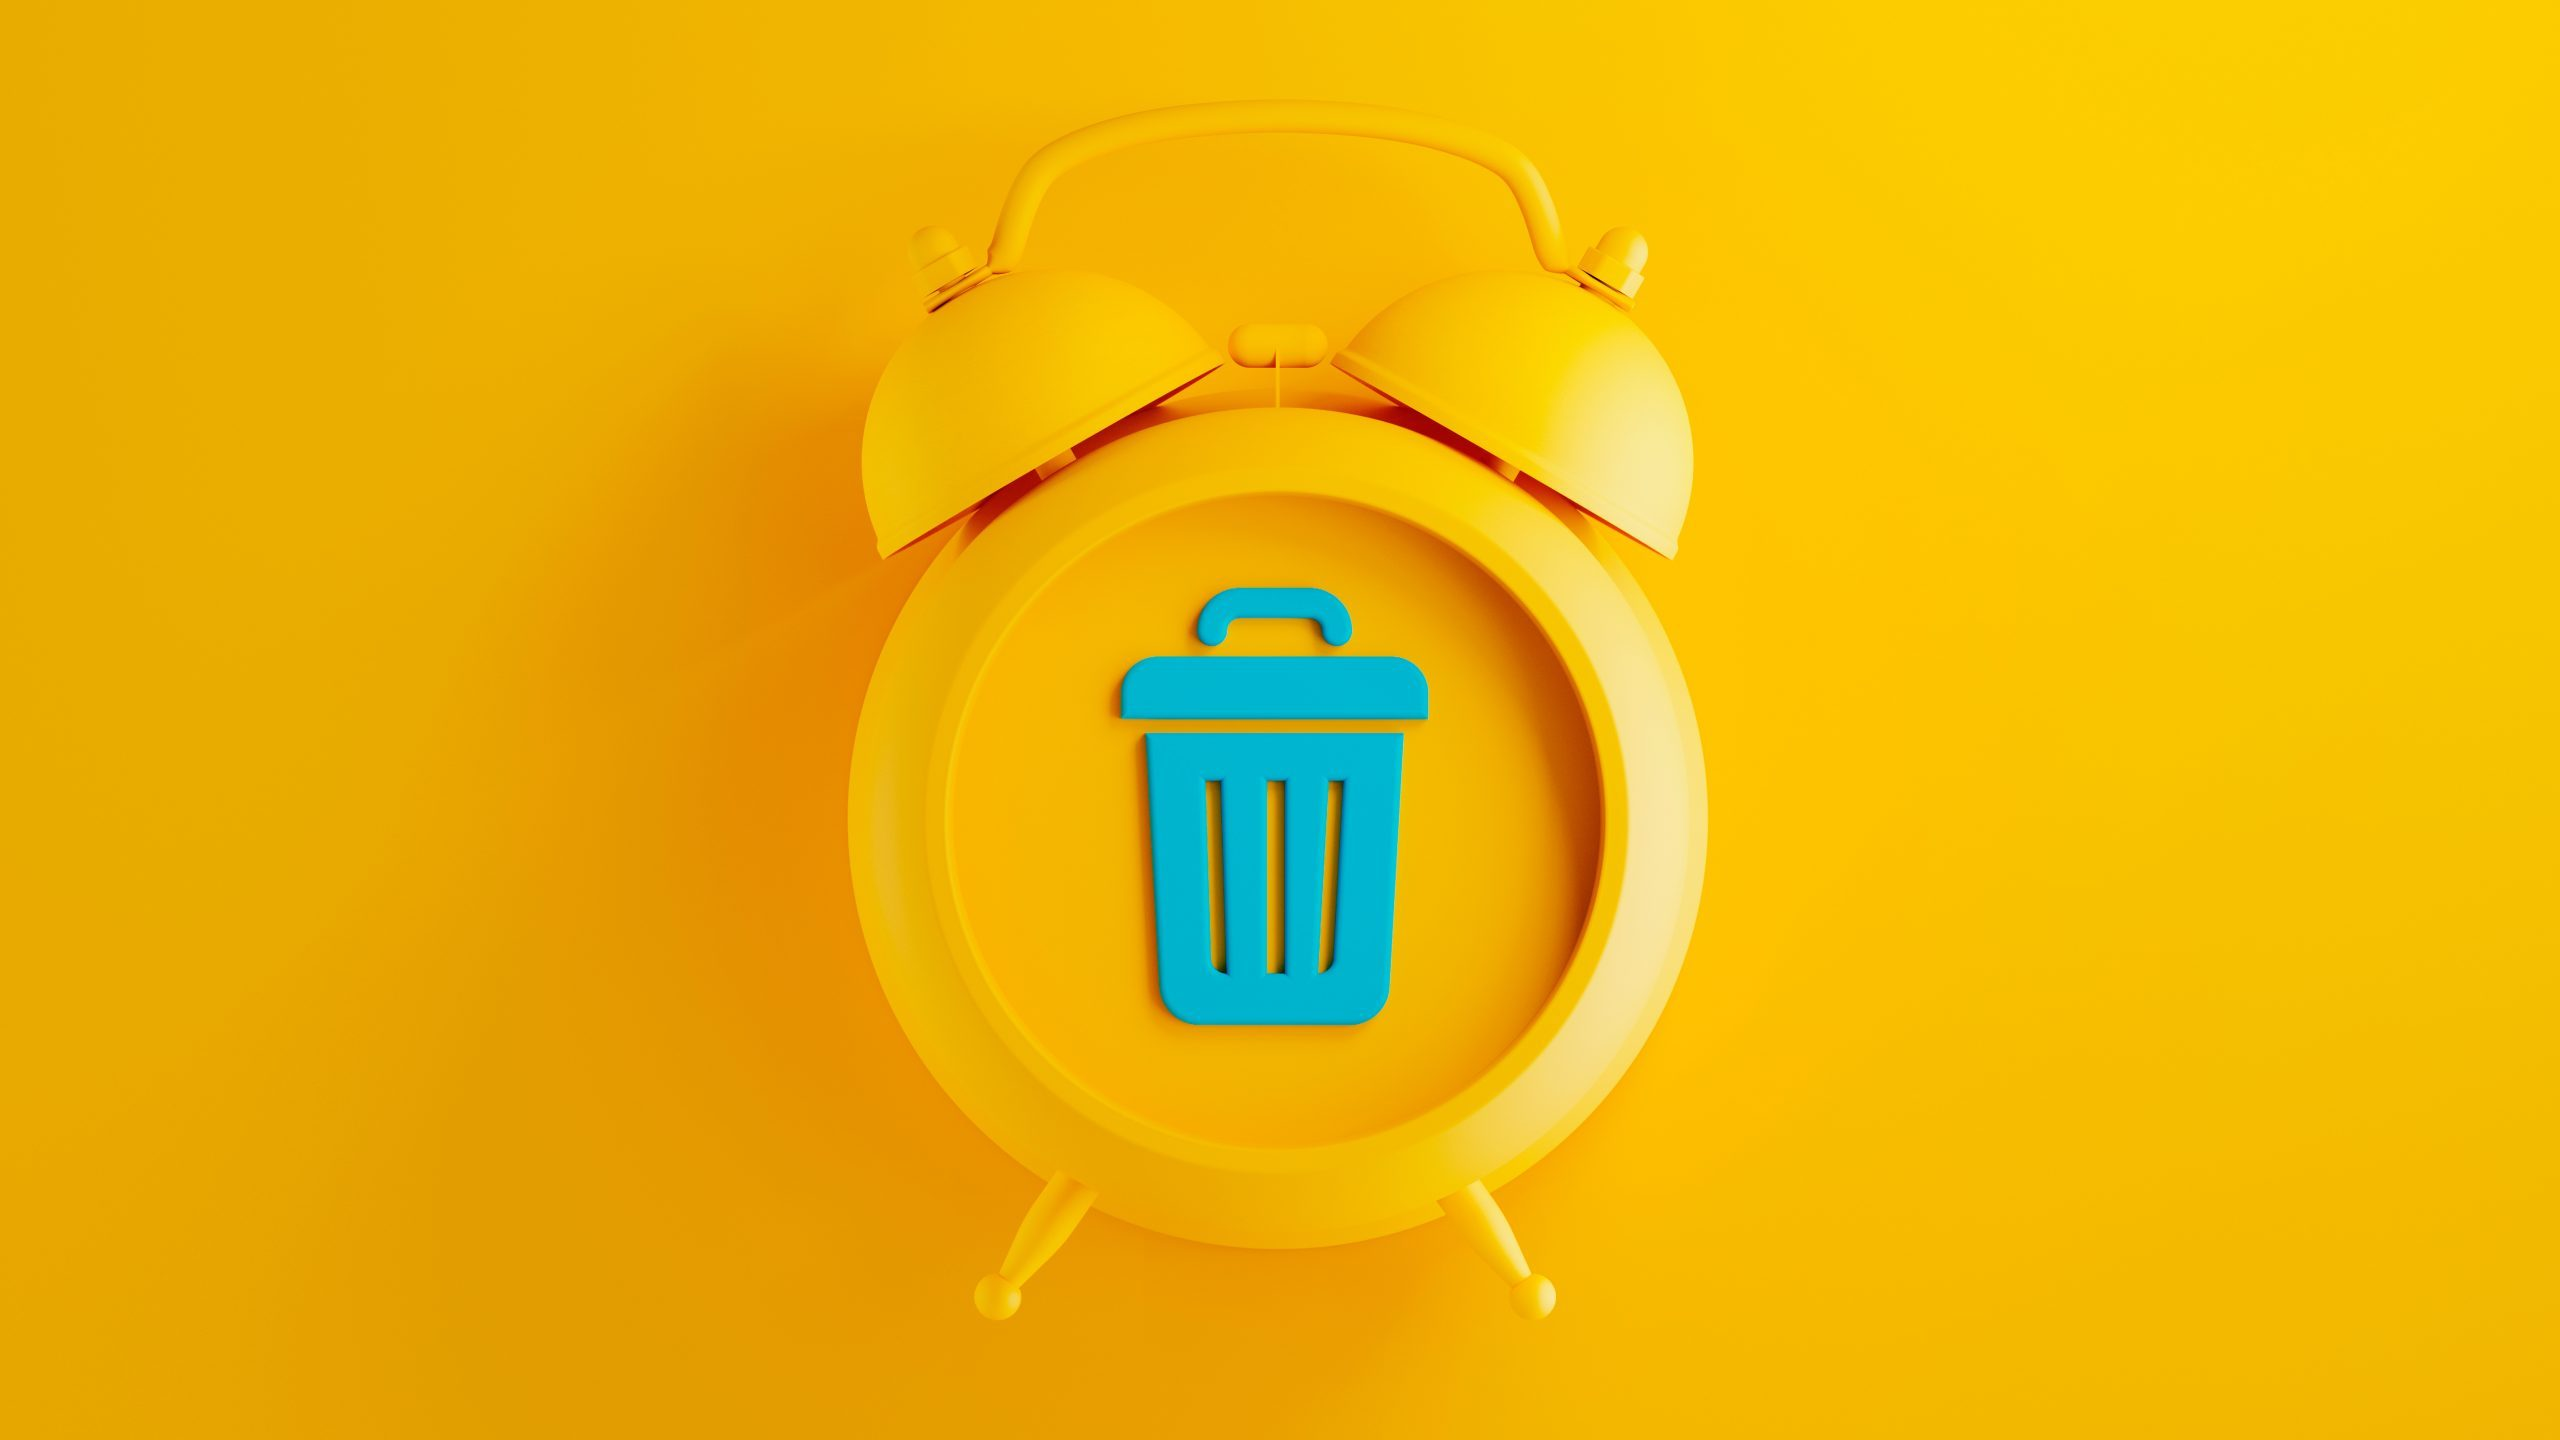 yellow alarm clock on yellow background with blue trash can symbol